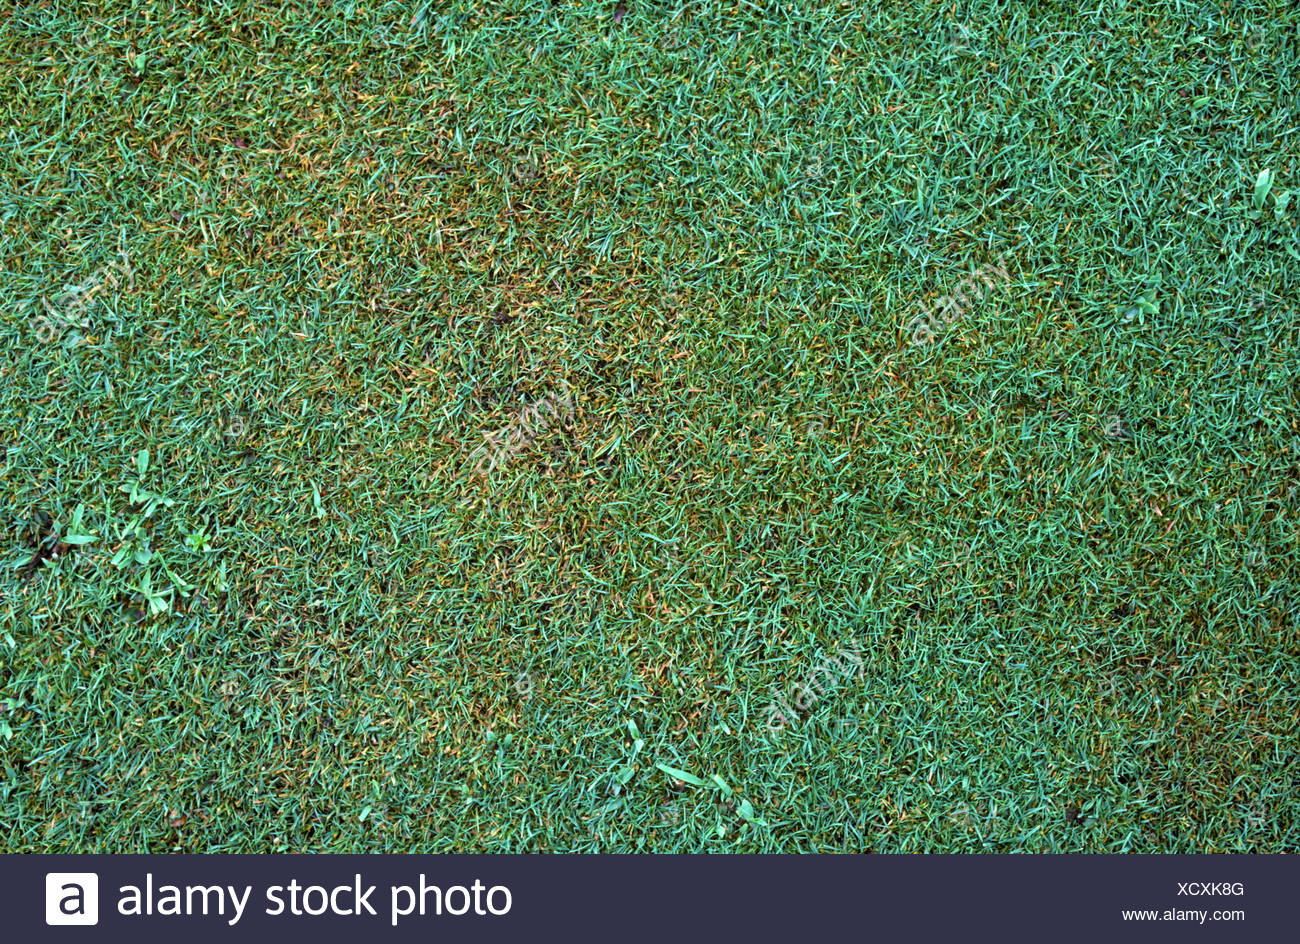 Brown patch Rhizoctonia solani on short golf green turf grass - Stock Image